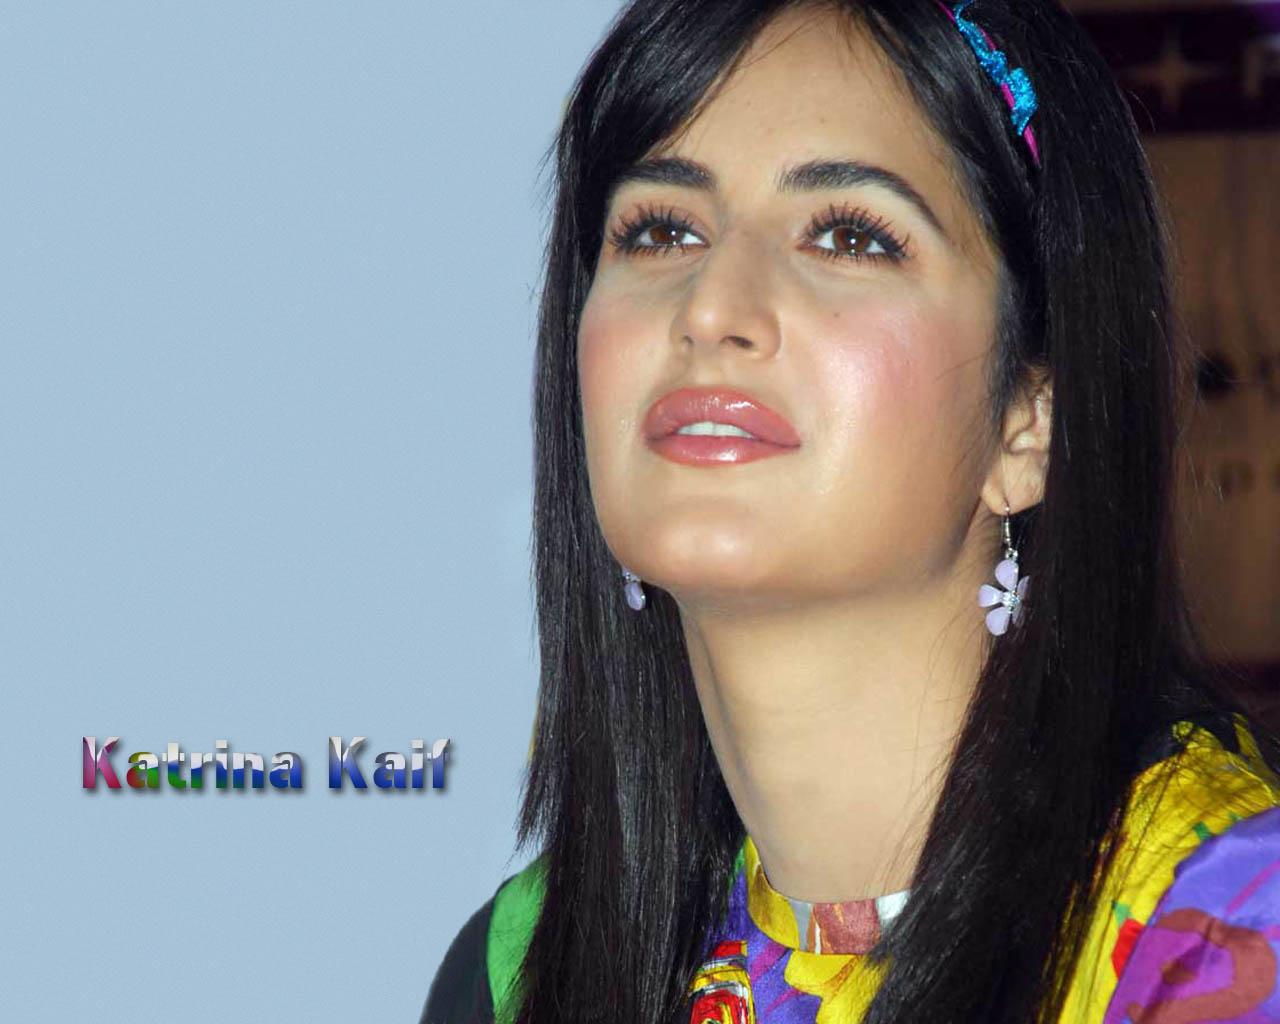 Katrina Kaif Hd Wallpapers For Desktop  Full Hd Wallpapers-5491